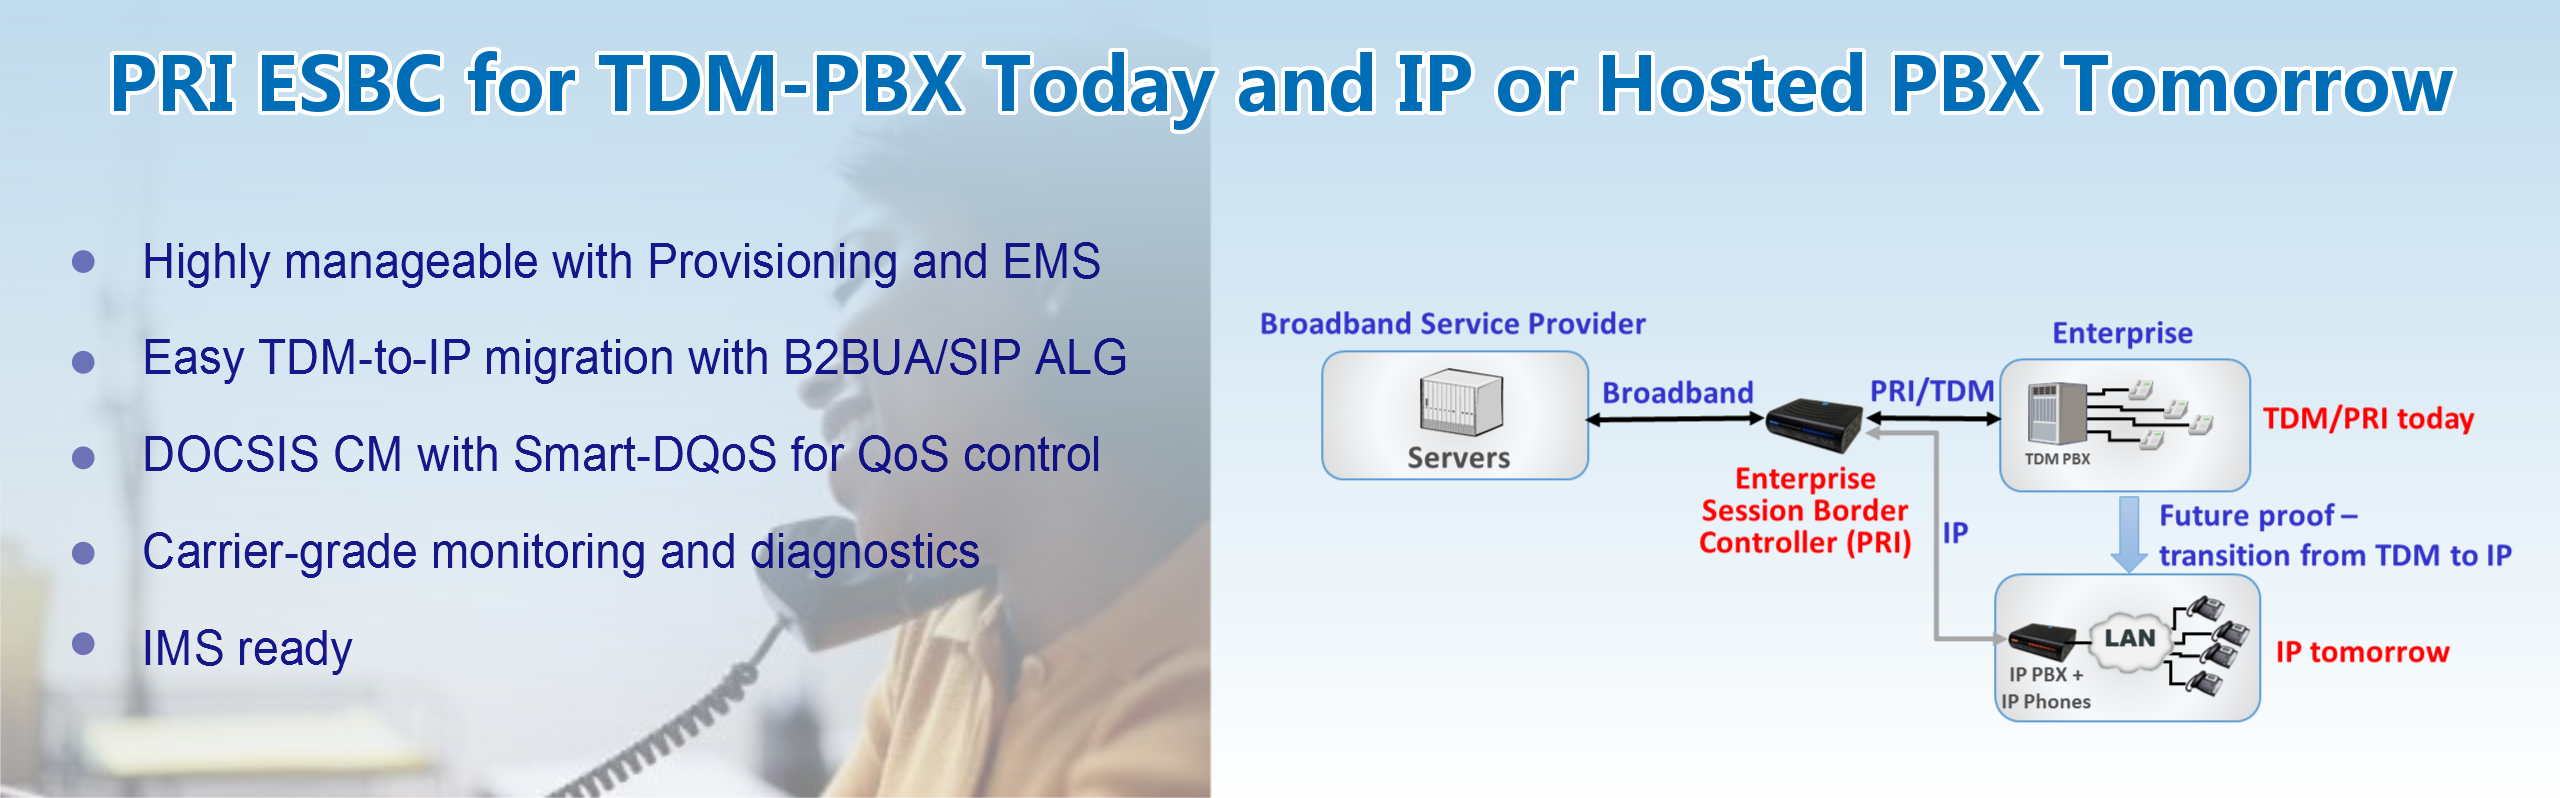 PRI ESBC for TDM-PBX Today and IP or Hosted PBX Tomorrow